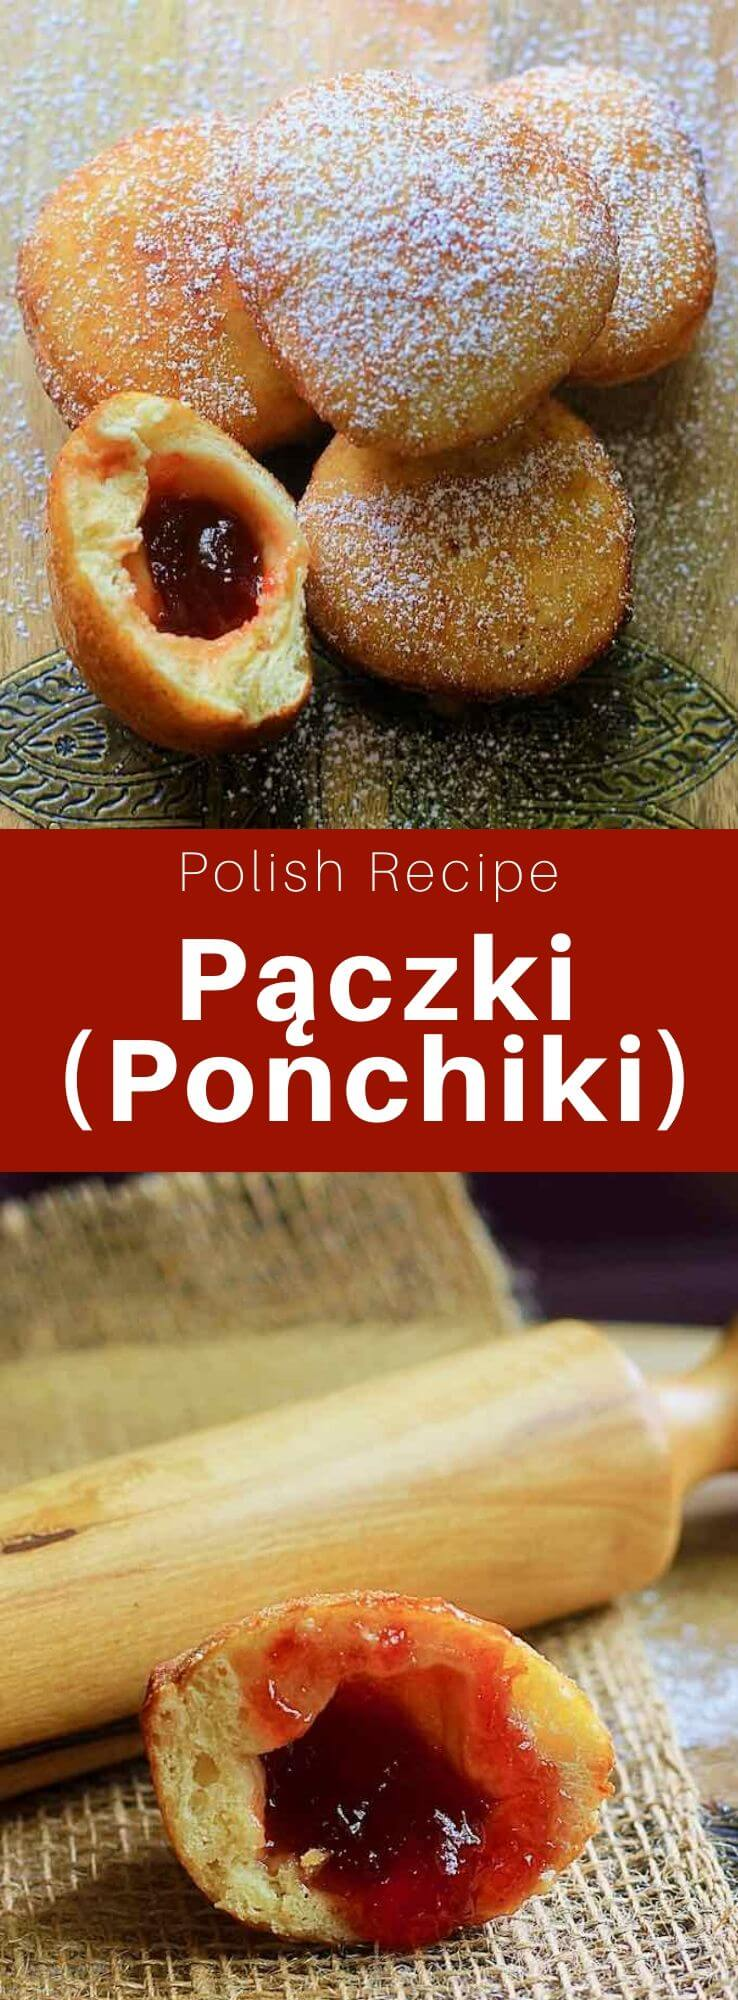 The pączki (or ponchik) are traditional Polish donuts, also popular in Central and Eastern Europe, that are filled with rose petal jam or fruit jam. #Russia #Poland #Russian #Polish #RussianRecipe #PolishRecipe #RussianFood #PolishFood #WorldCuisine #196flavors